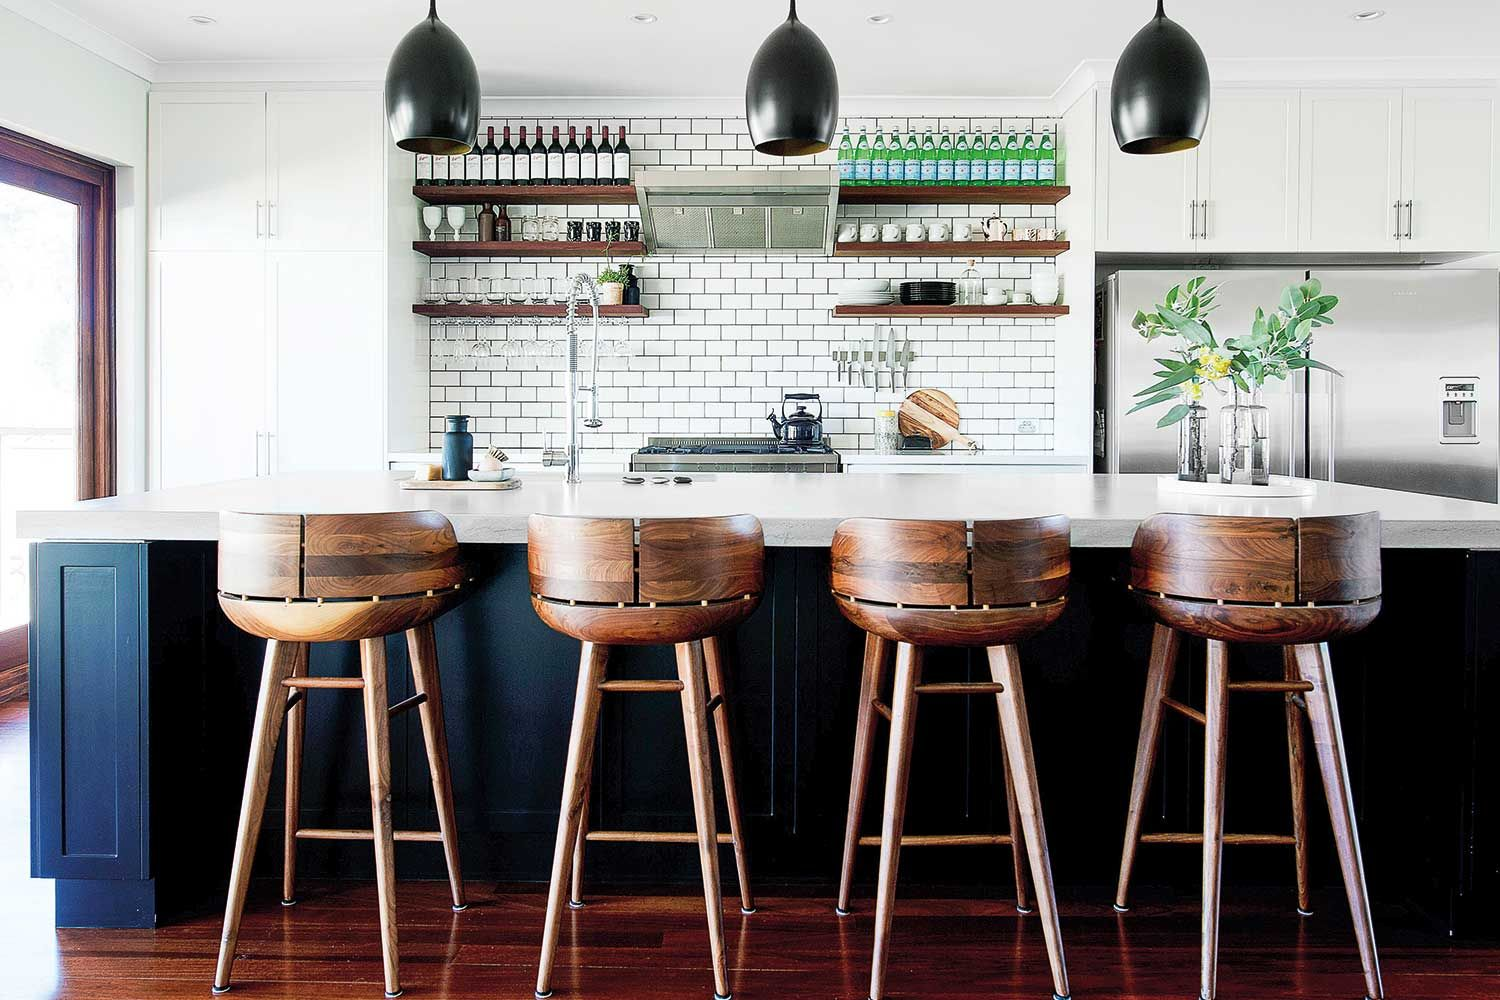 9 Bar Stool Ideas in 9   buy bar stools, home, kitchen ...